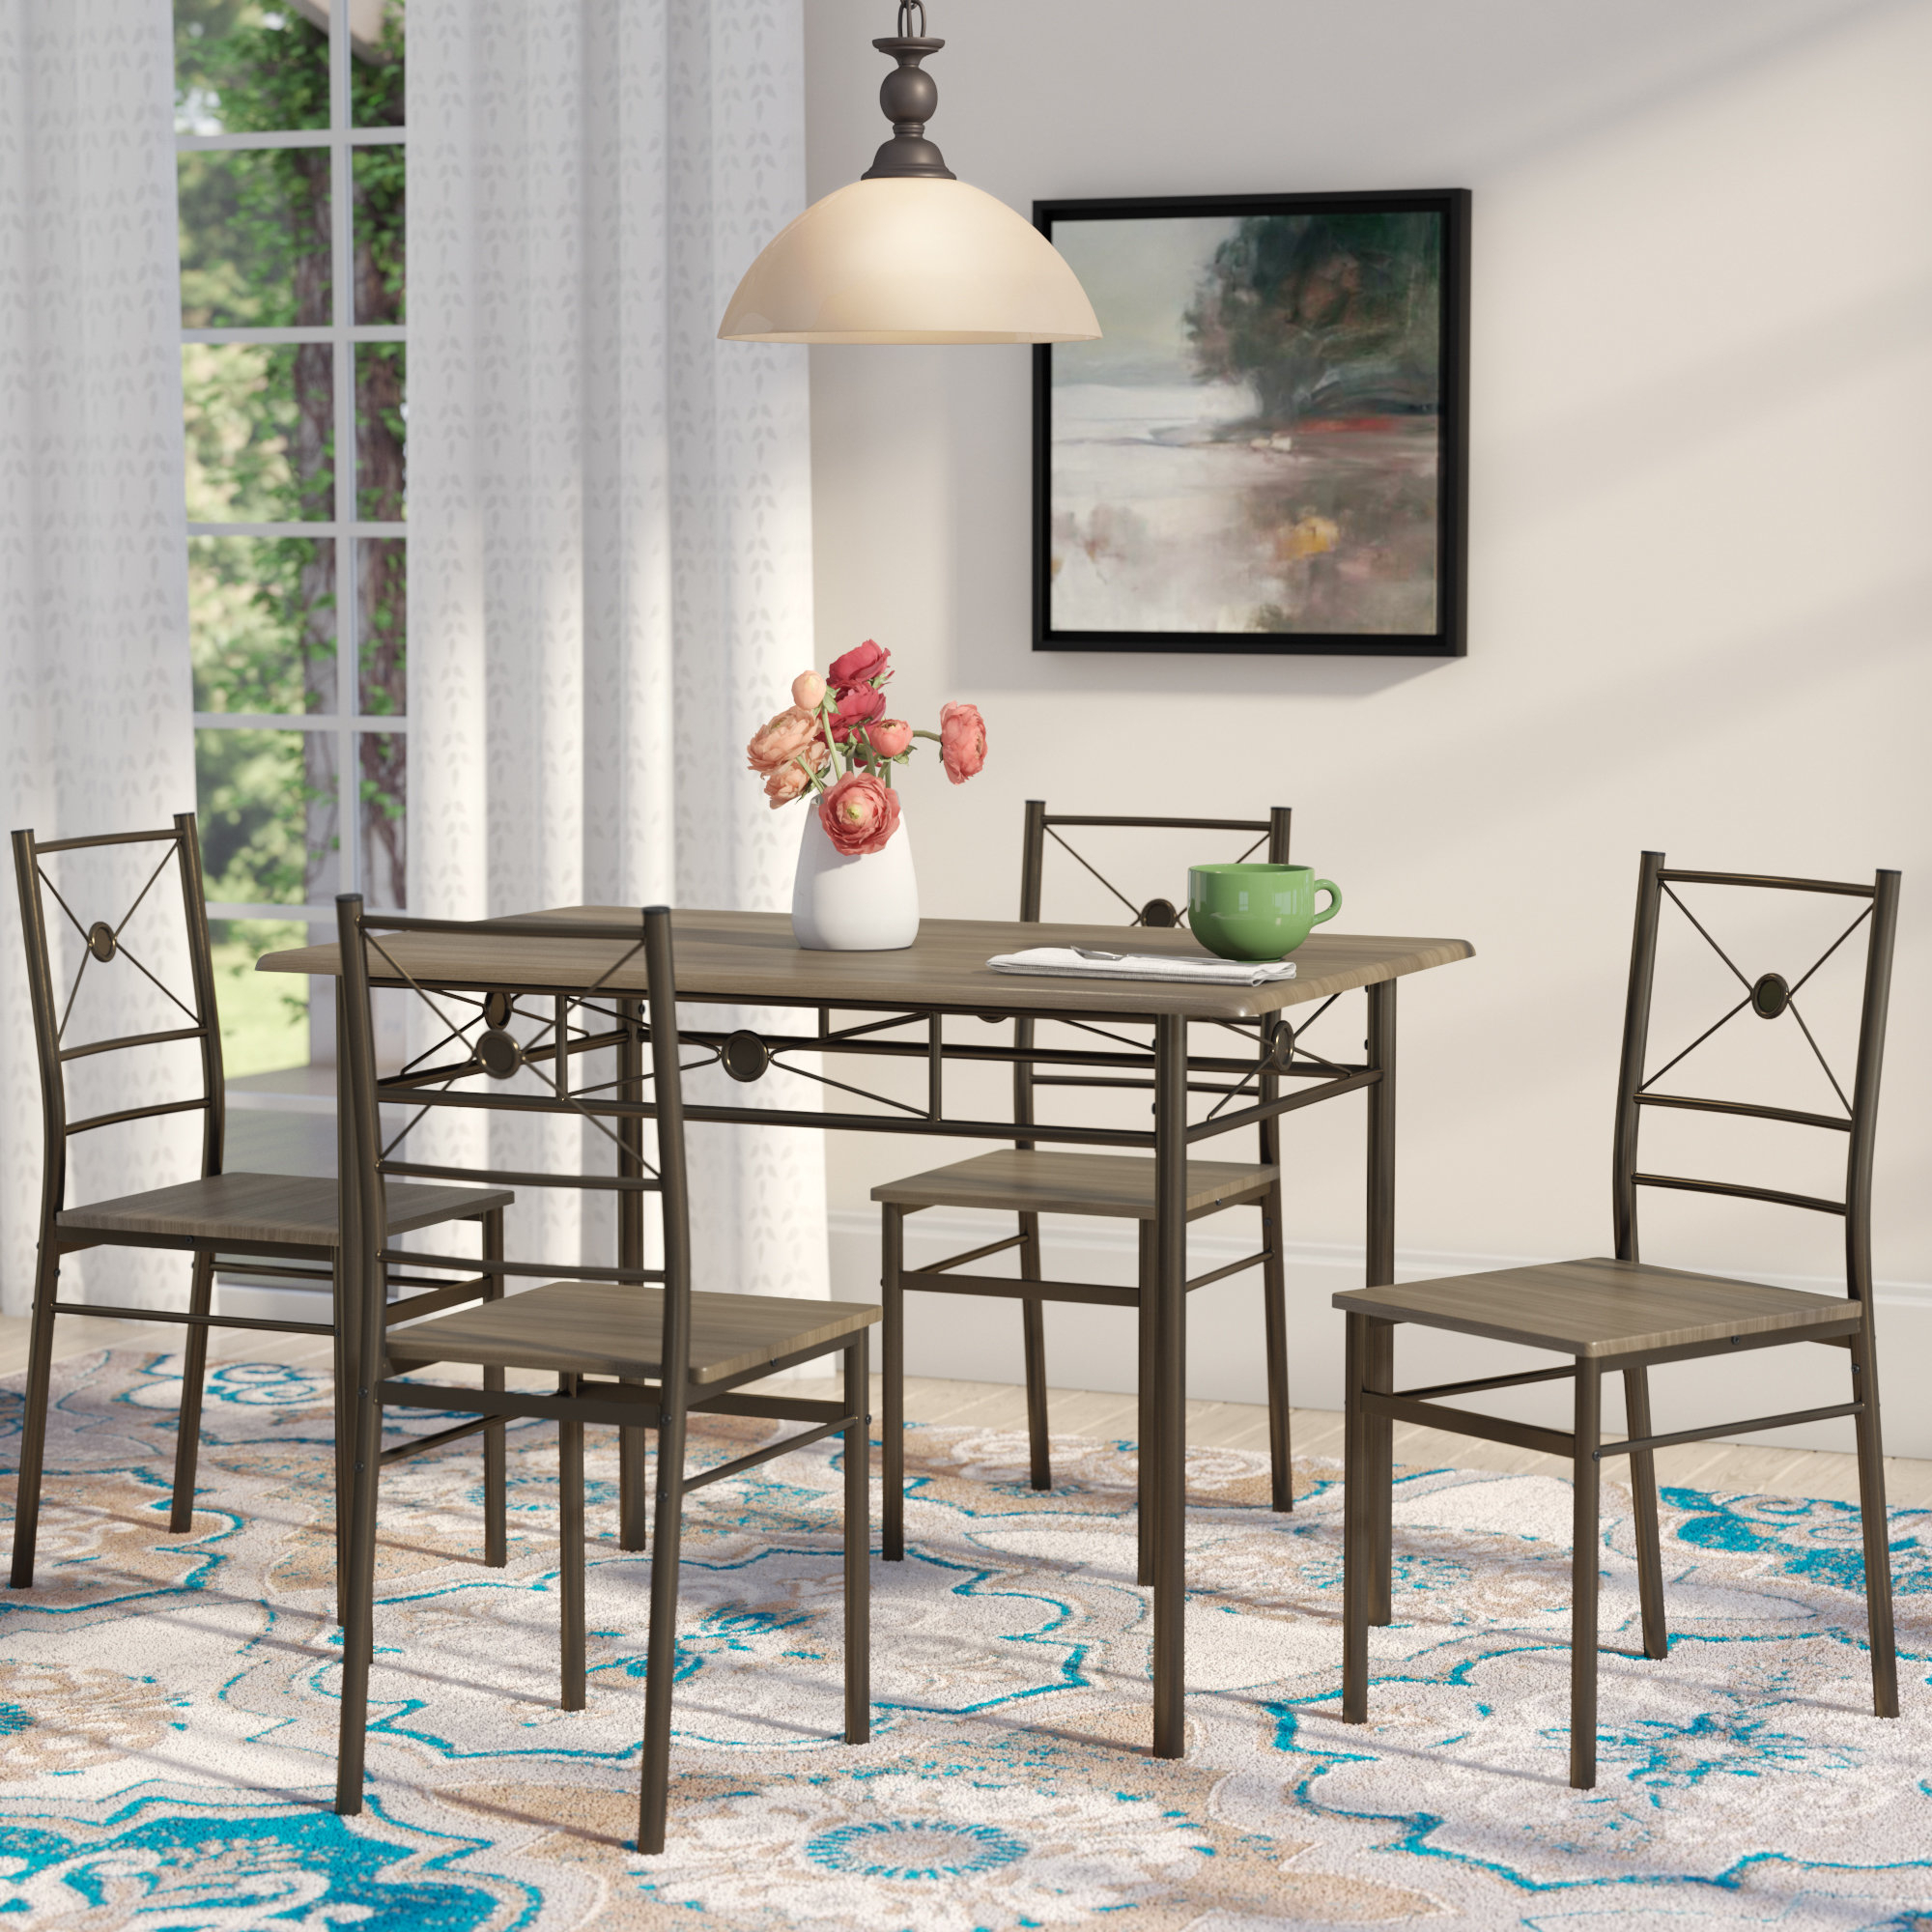 Walnut Kitchen & Dining Room Sets You'll Love | Wayfair (Image 18 of 20)